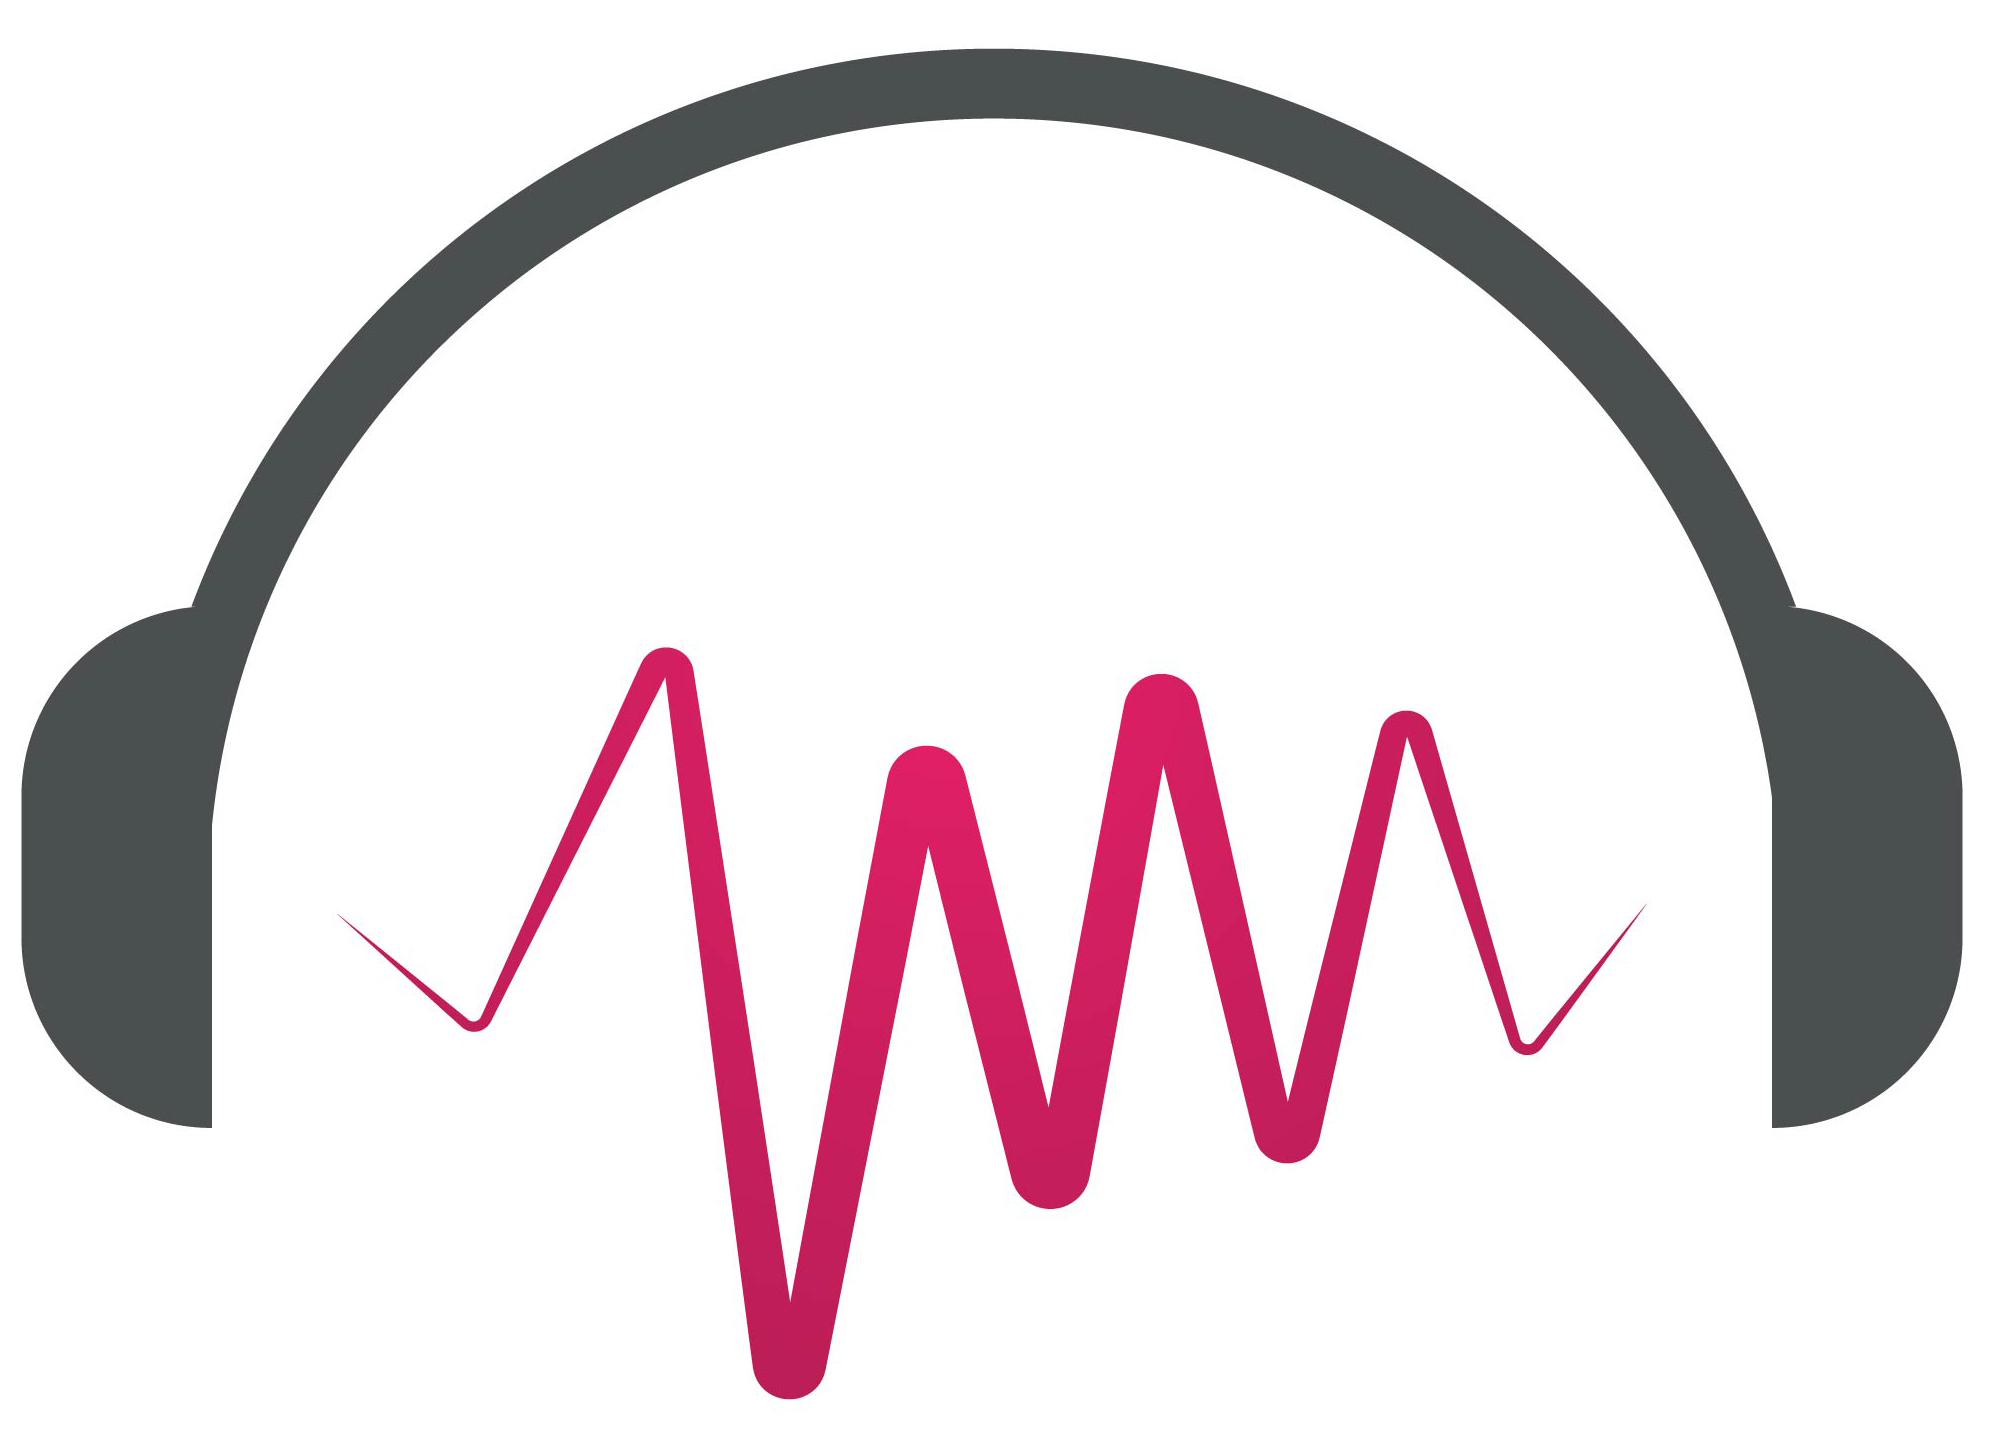 Illustrated headphones with sound wave